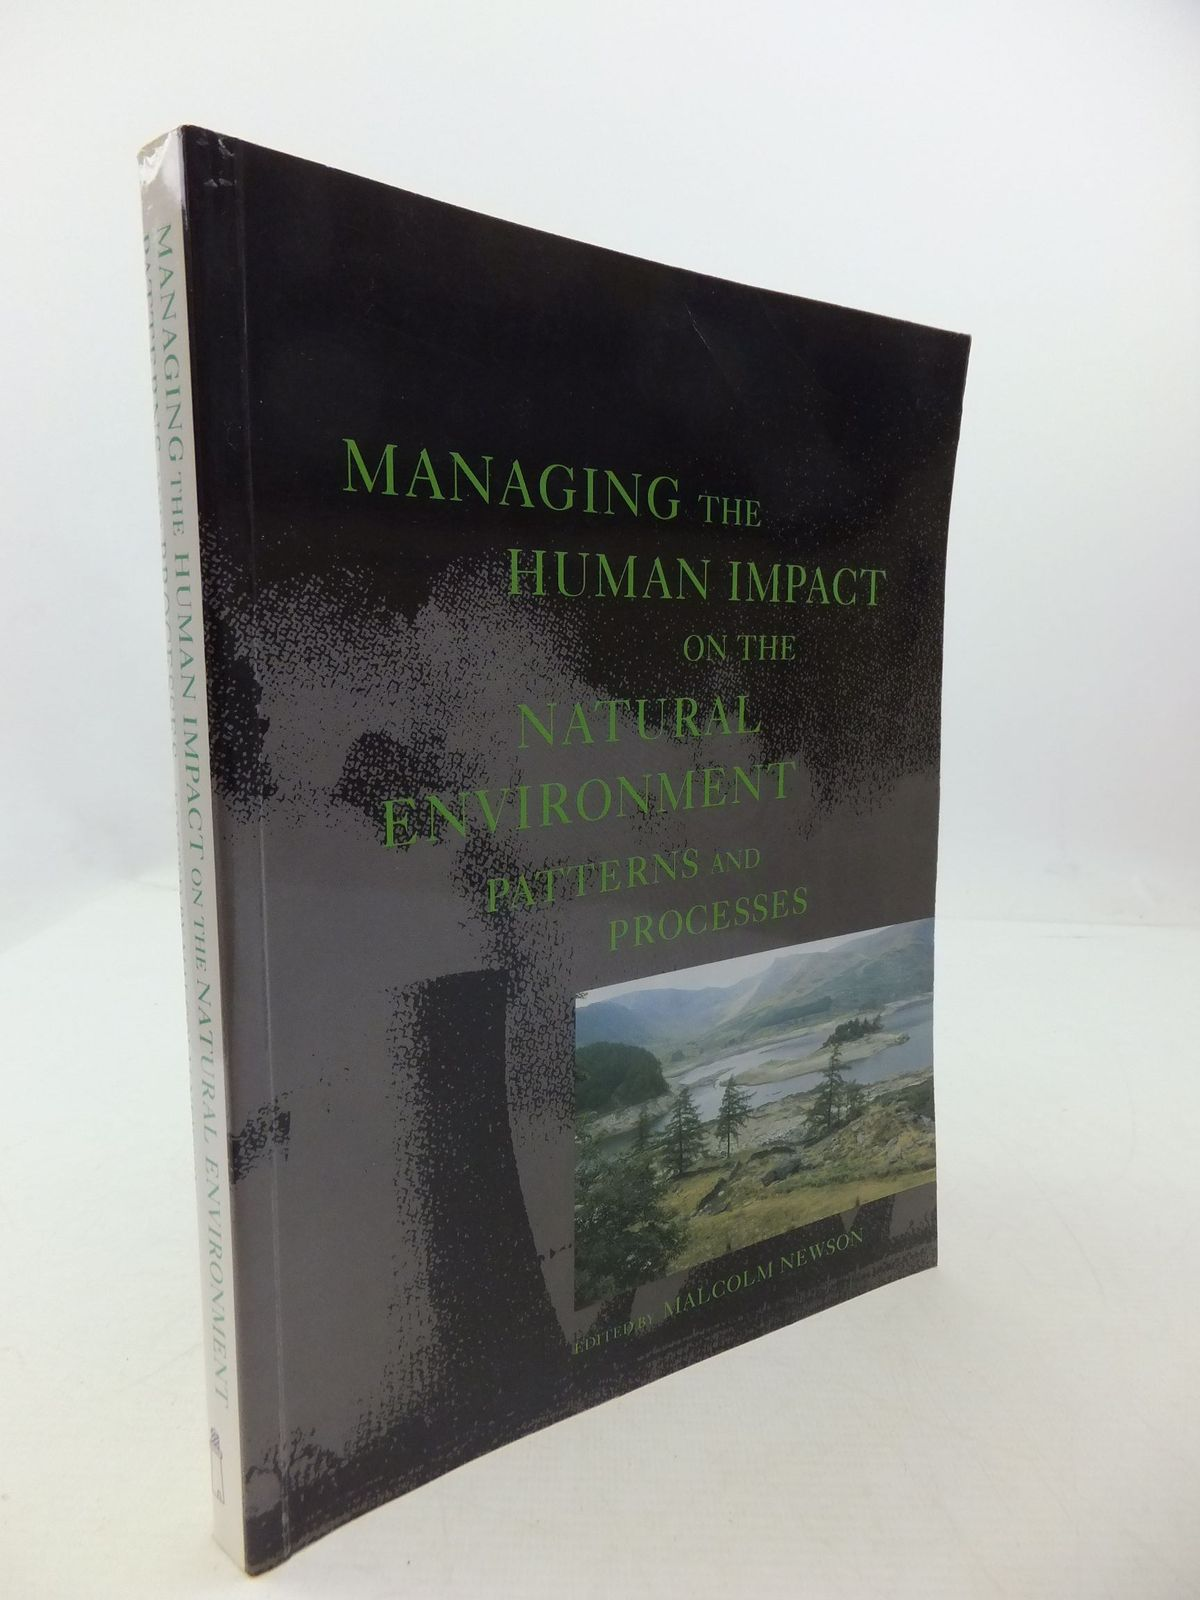 Photo of MANAGING THE HUMAN IMPACT ON THE NATURAL ENVIRONMENT PATTERNS AND PROCESSES written by Newsom, Malcolm et al,  published by Belhaven Press (STOCK CODE: 2111730)  for sale by Stella & Rose's Books